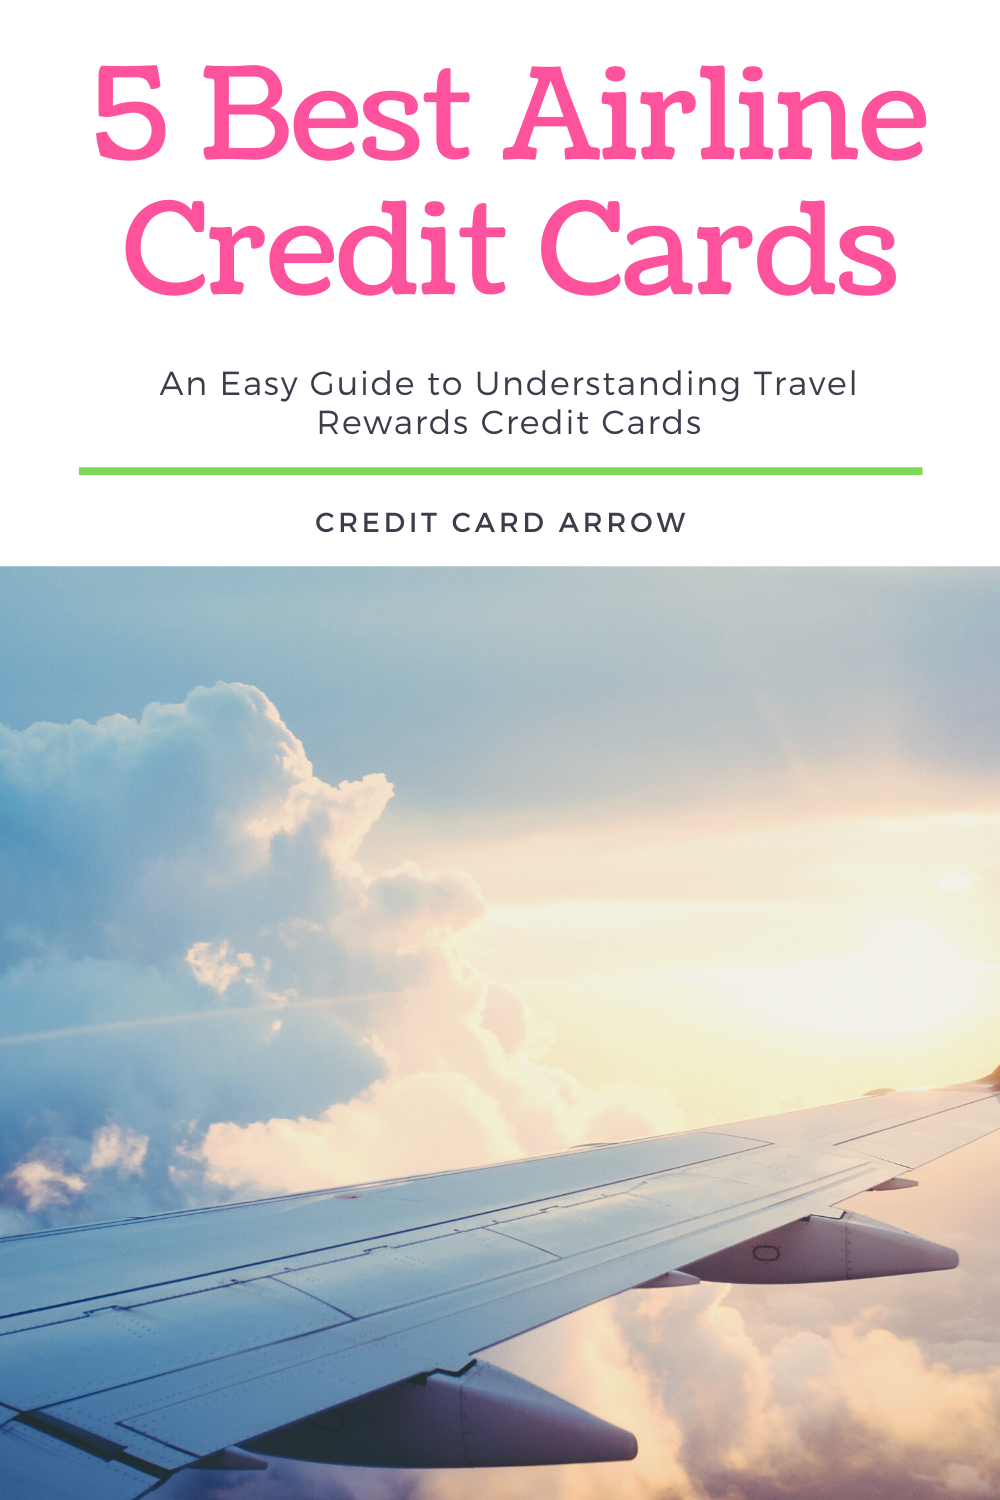 5 Best Airline Credit Cards in 2020 | Best airline credit cards, Airline credit cards, Travel ...